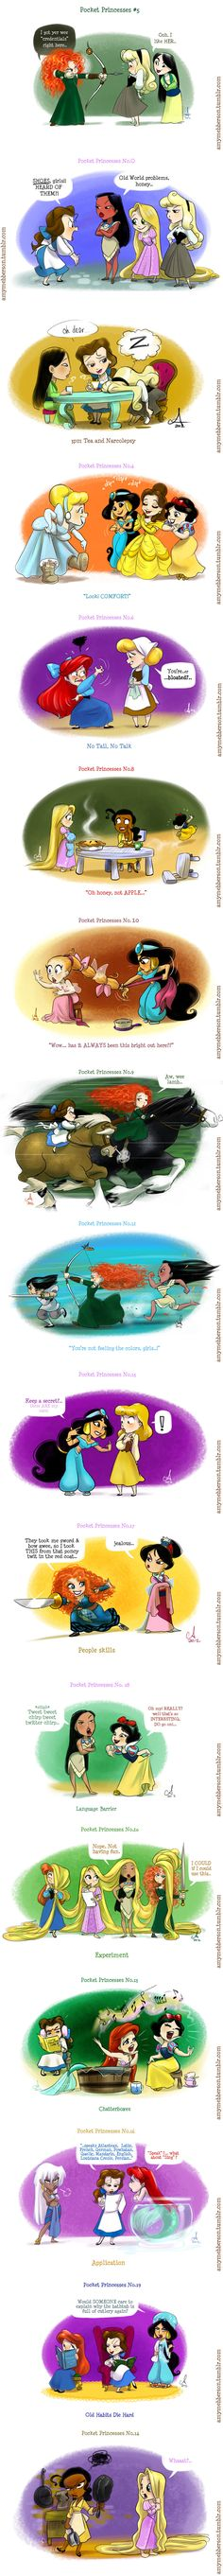 Funny #Disney Pocket Princesses Comics http://geektyrant.com/news/2012/6/3/funny-disney-pocket-princesses-comics.html